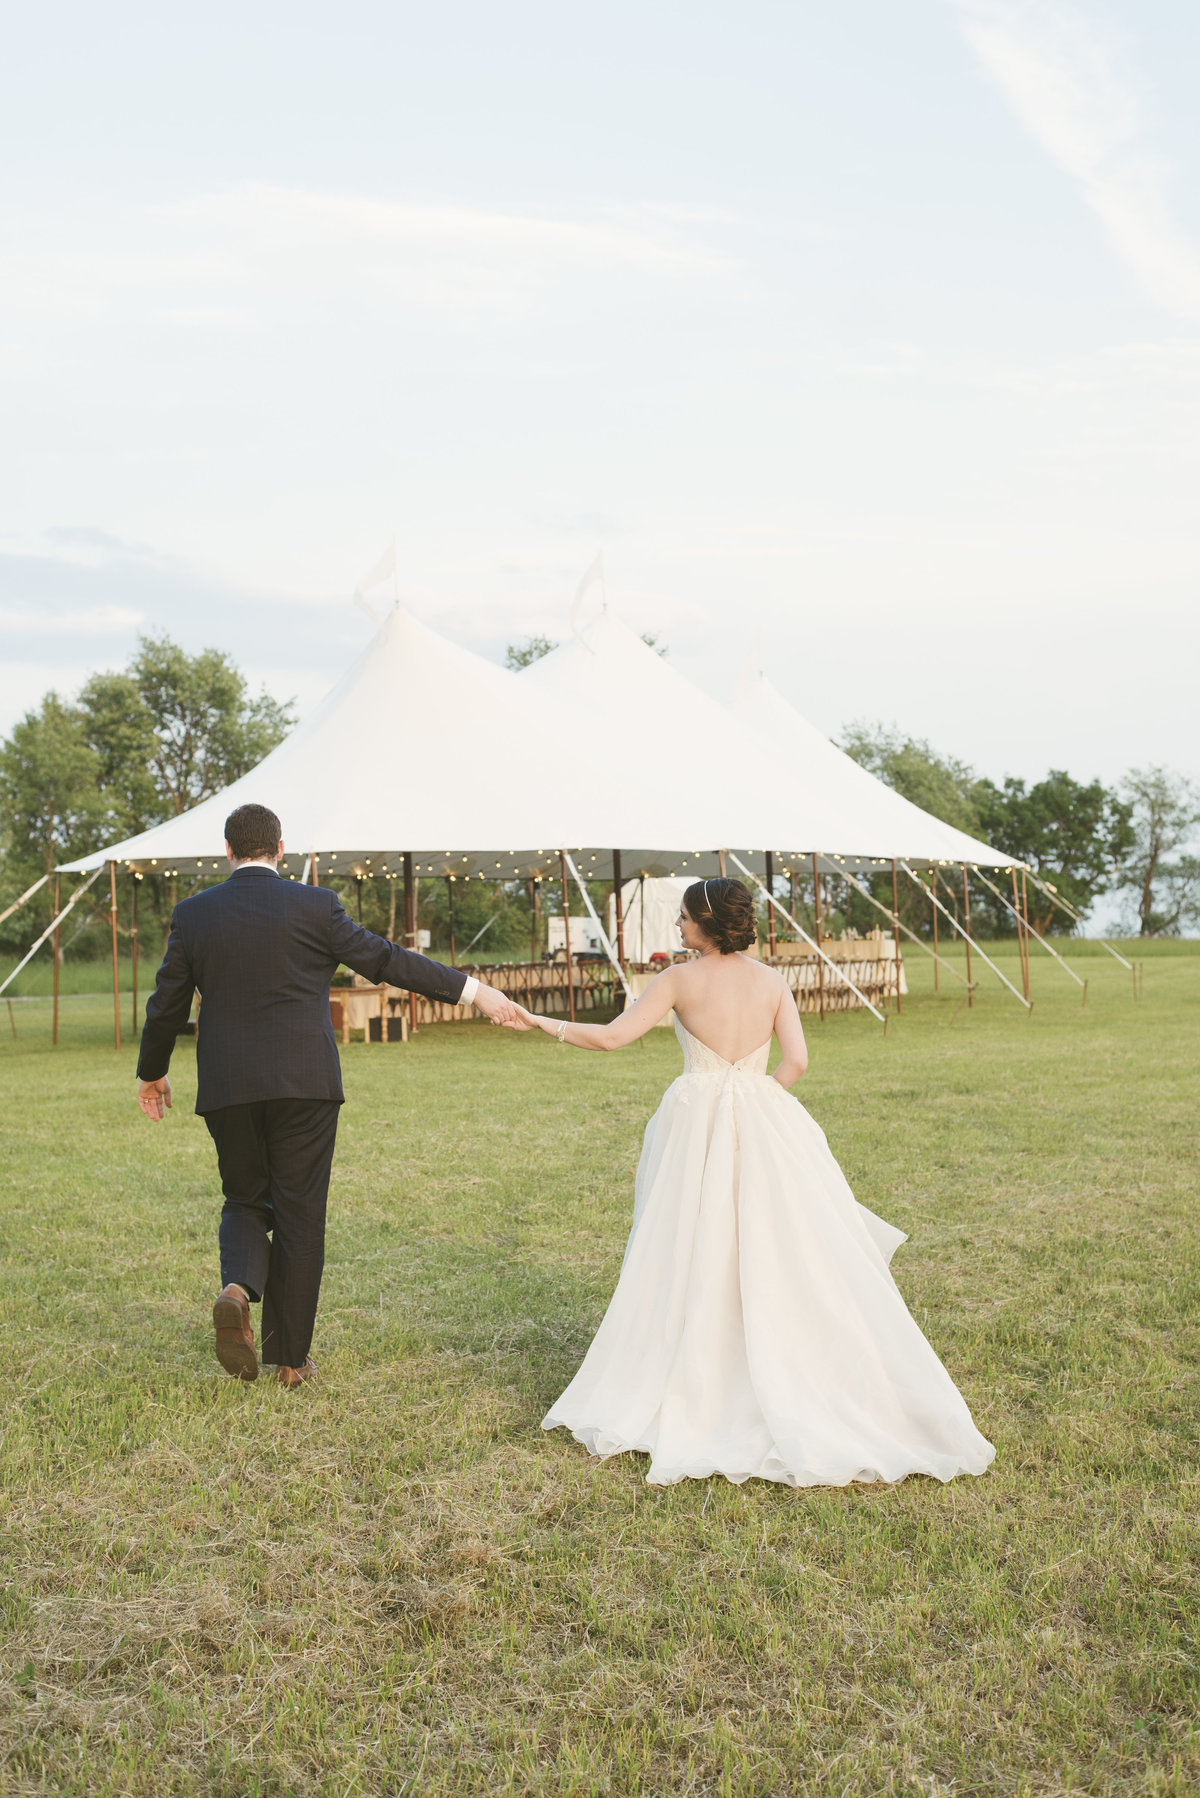 Monica-Relyea-Events-Alicia-King-Photography-Globe-Hill-Ronnybrook-Farm-Hudson-Valley-wedding-shoot-inspiration107